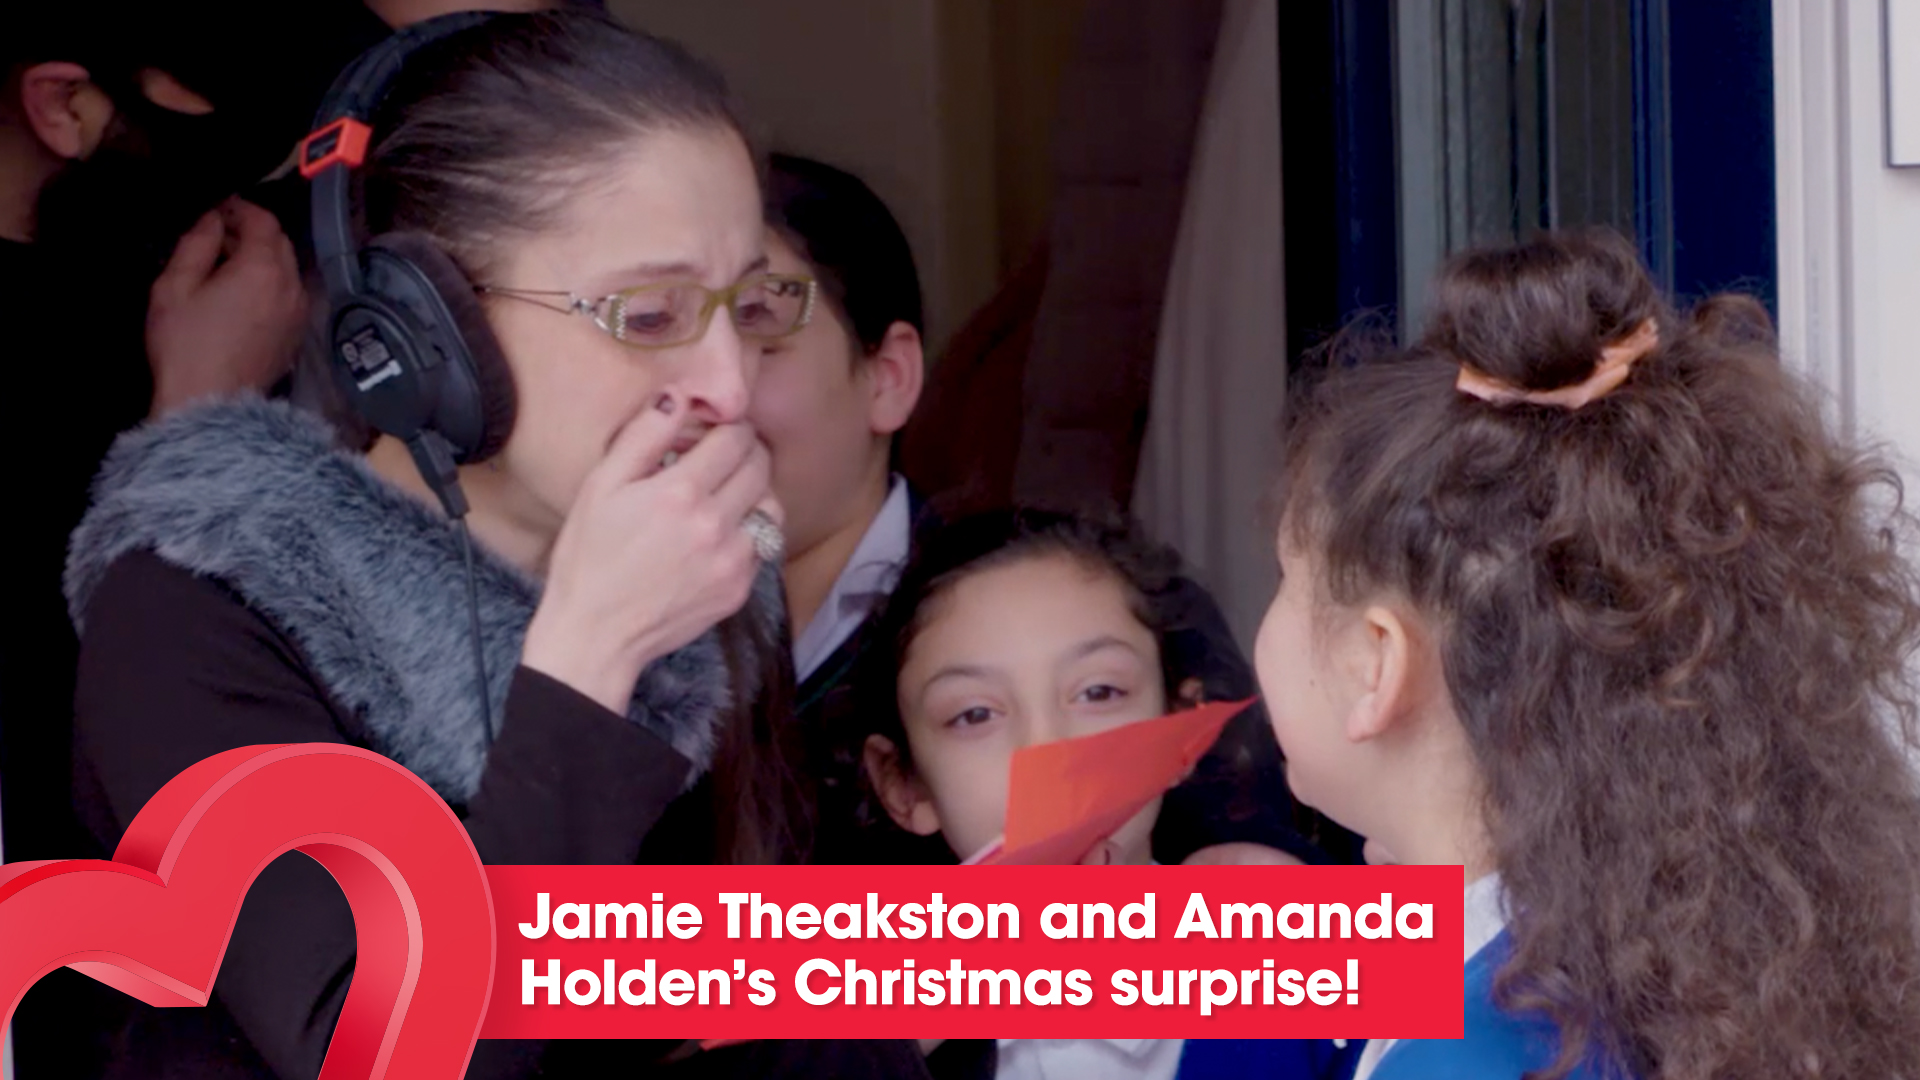 Heart Breakfast surprise a very special family this Christmas